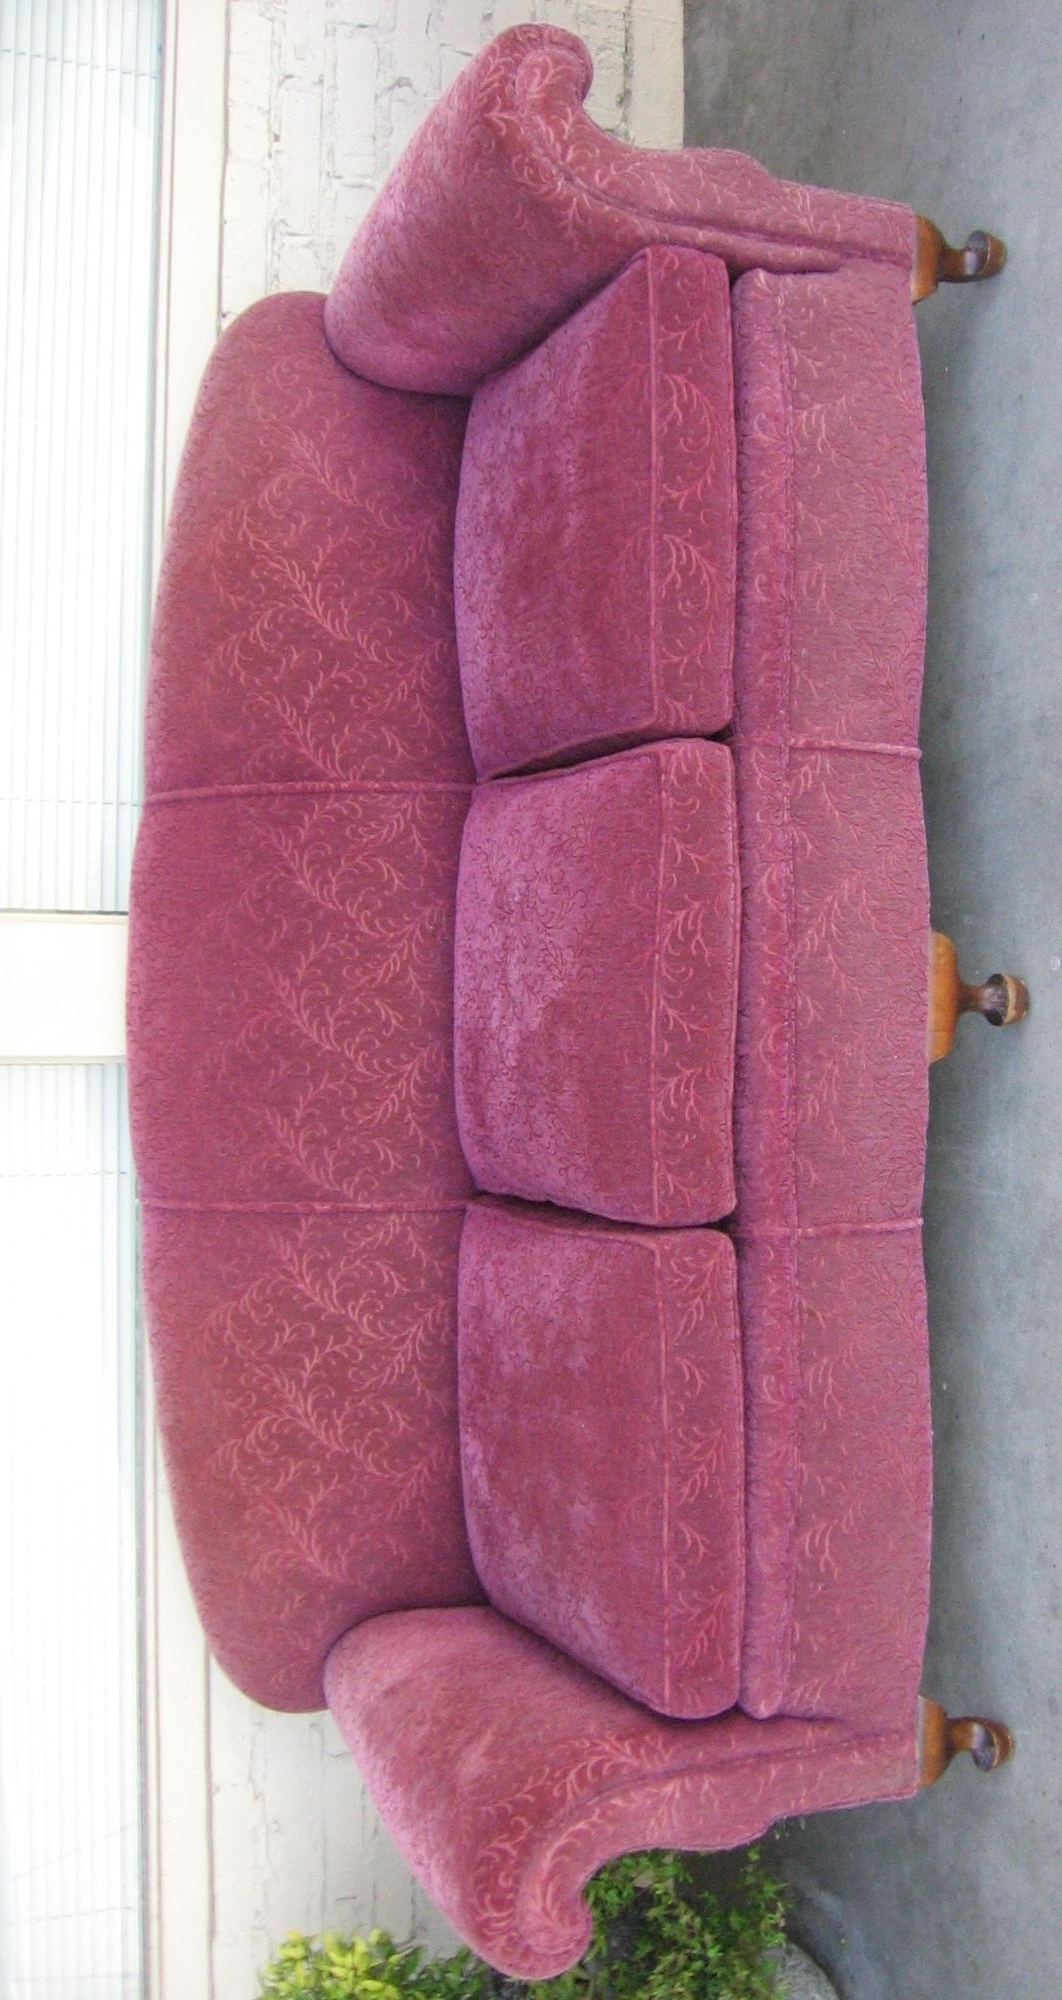 1930S Sofas Intended For Trendy 1930's Sofa Love The Curves:) Nylon Frieze (Frise') Fabric (View 8 of 15)